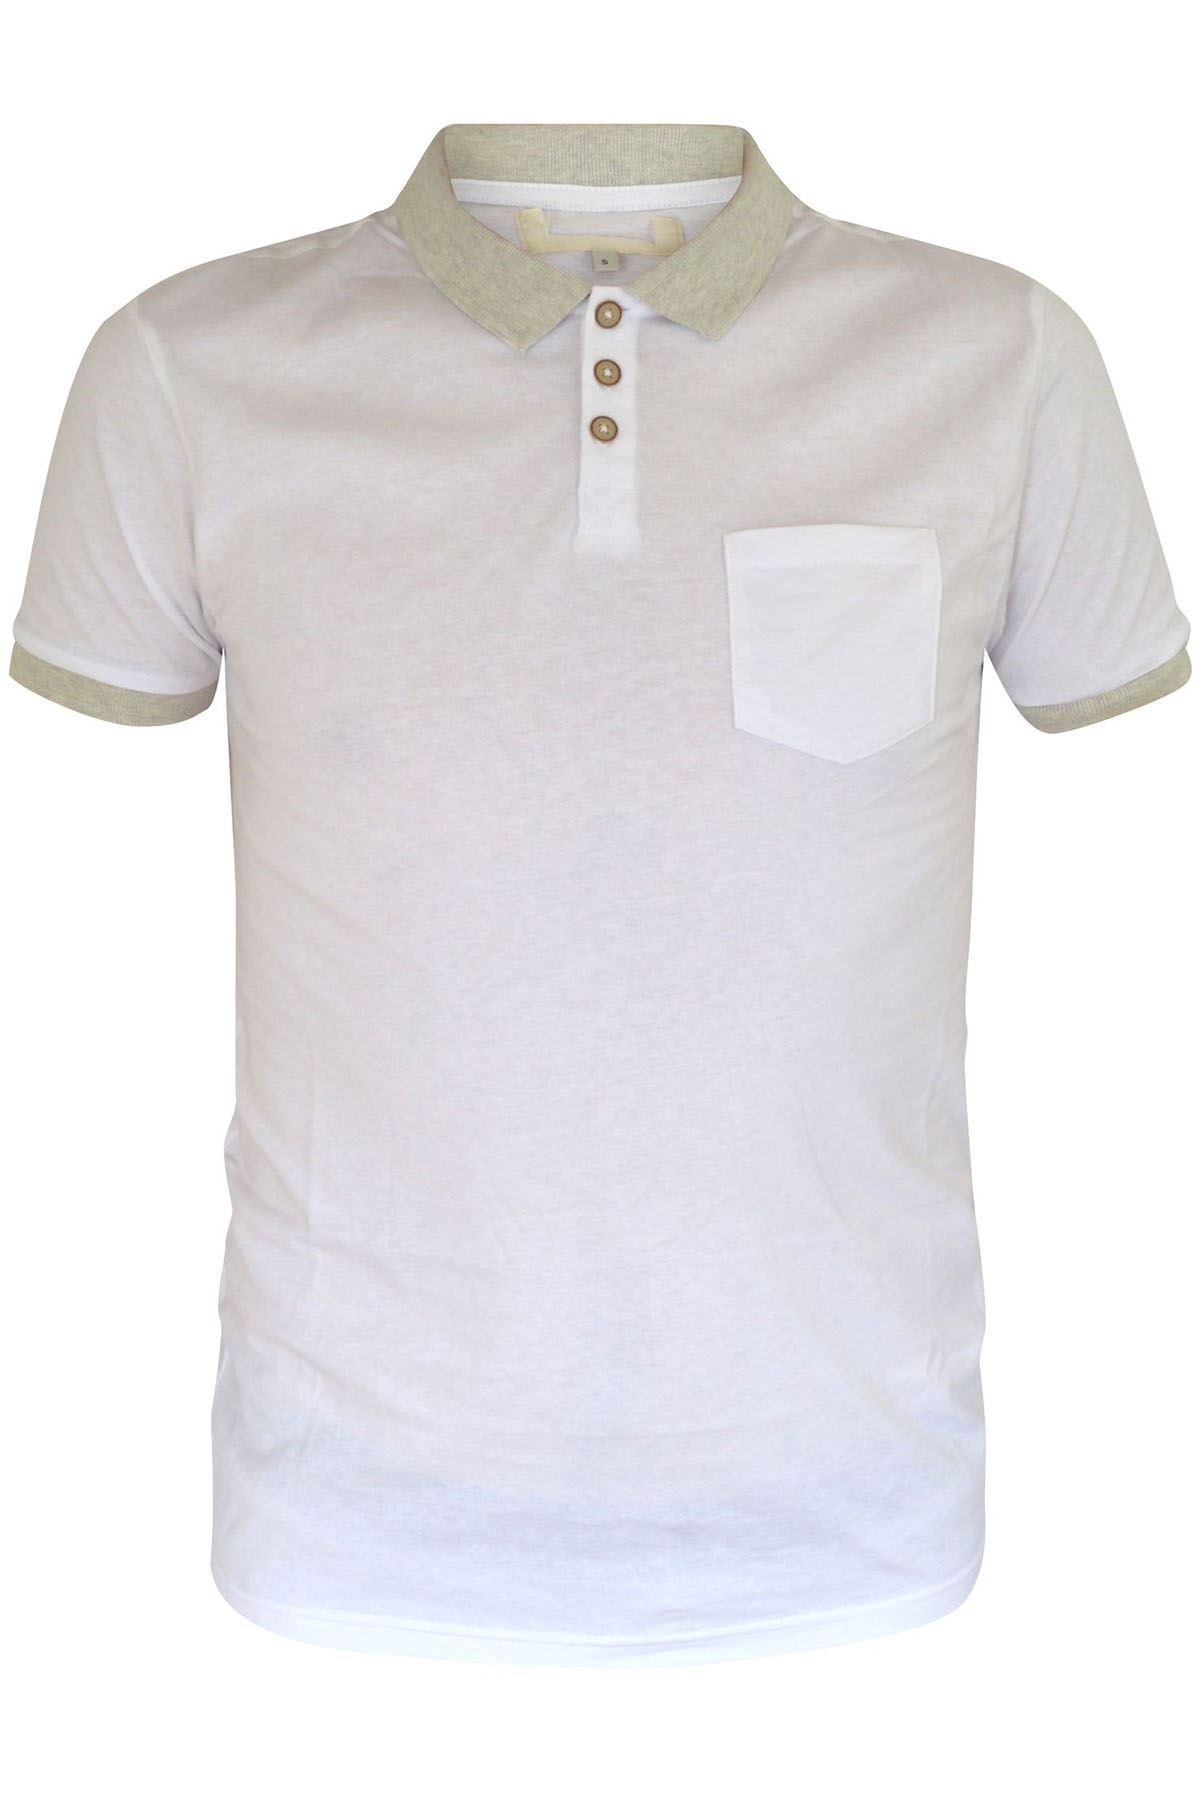 H-amp-M-Mens-Cotton-Polo-Shirts-SALE-Was-22 thumbnail 15